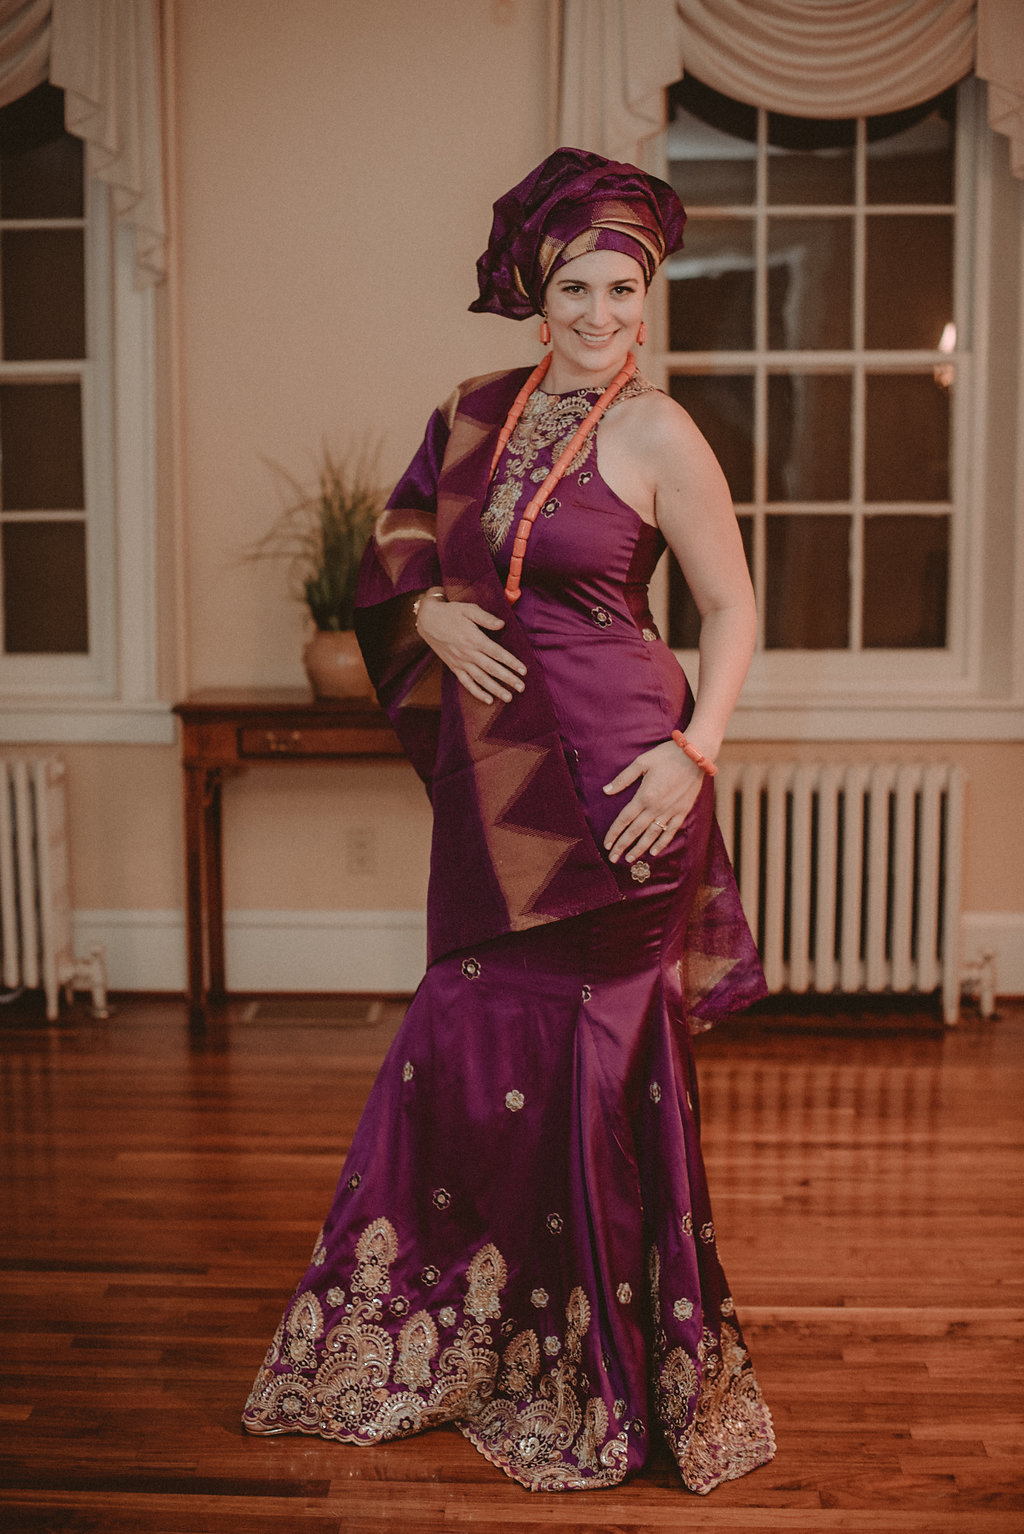 Bride in traditional clothing at reception